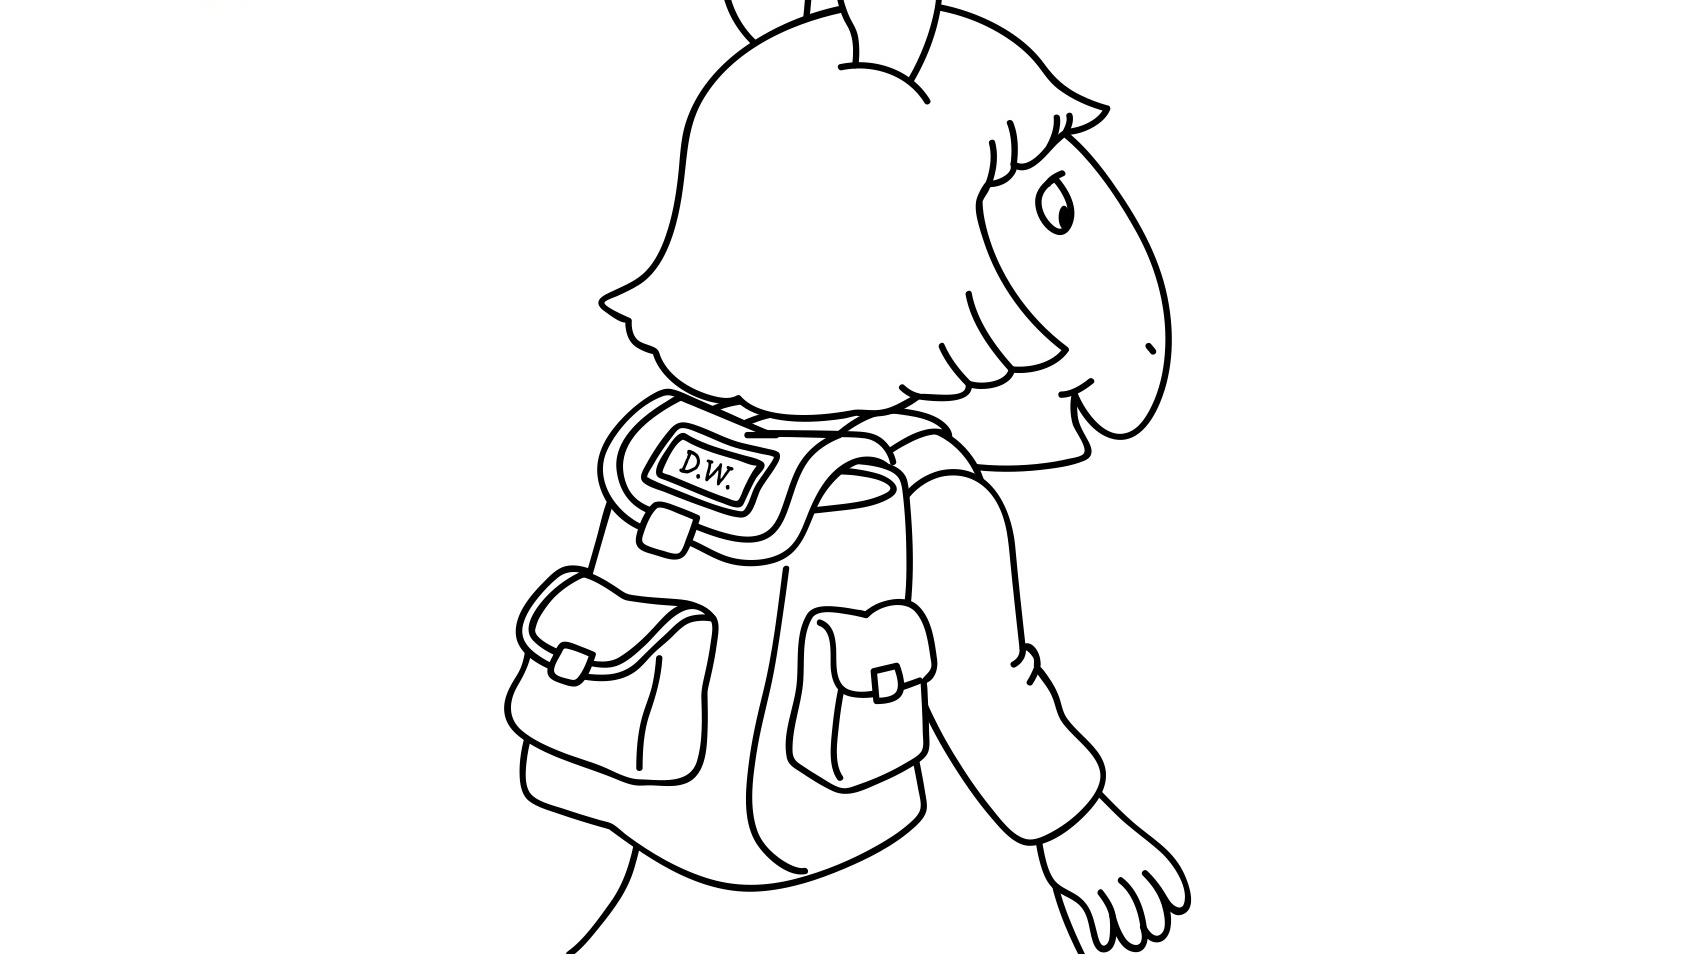 Phone Coloring Pages - Coloring Home | 954x1700